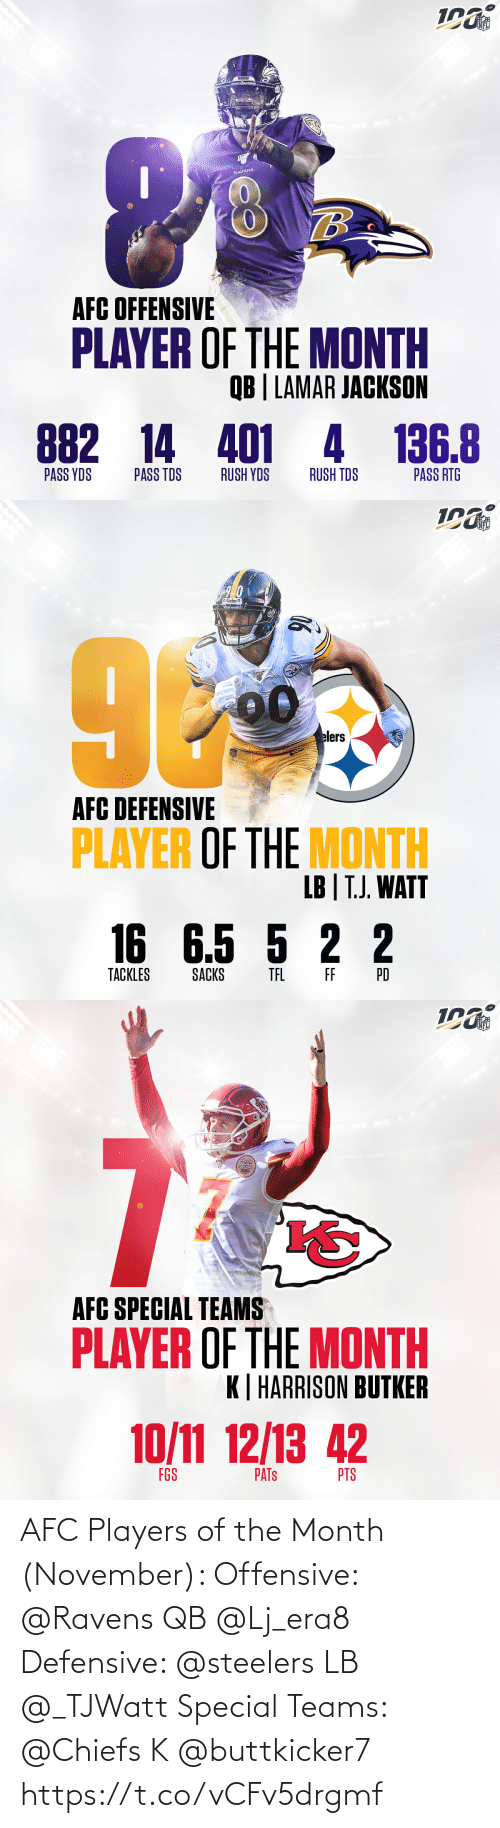 afc: NFL  RAVENS  AFC OFFENSIVE  PLAYER OF THE MONTH  QB | LAMAR JACKSON  882 14 401 4 136.8  PASS YDS  PASS TDS  RUSH YDS  RUSH TDS  PASS RTG   NFL  elers  AFC DEFENSIVE  PLAYER OF THE MONTH  LB | T.J. WATT  16 6.5 5 2 2  TACKLES  SACKS  TEL  FF  PD   NFL  AFC SPECIAL TEAMS  PLAYER OF THE MONTH  K| HARRISON BUTKER  10/11 12/13 42  FGS  PTS  PATS AFC Players of the Month (November):   Offensive: @Ravens QB @Lj_era8  Defensive: @steelers LB @_TJWatt  Special Teams: @Chiefs K @buttkicker7 https://t.co/vCFv5drgmf